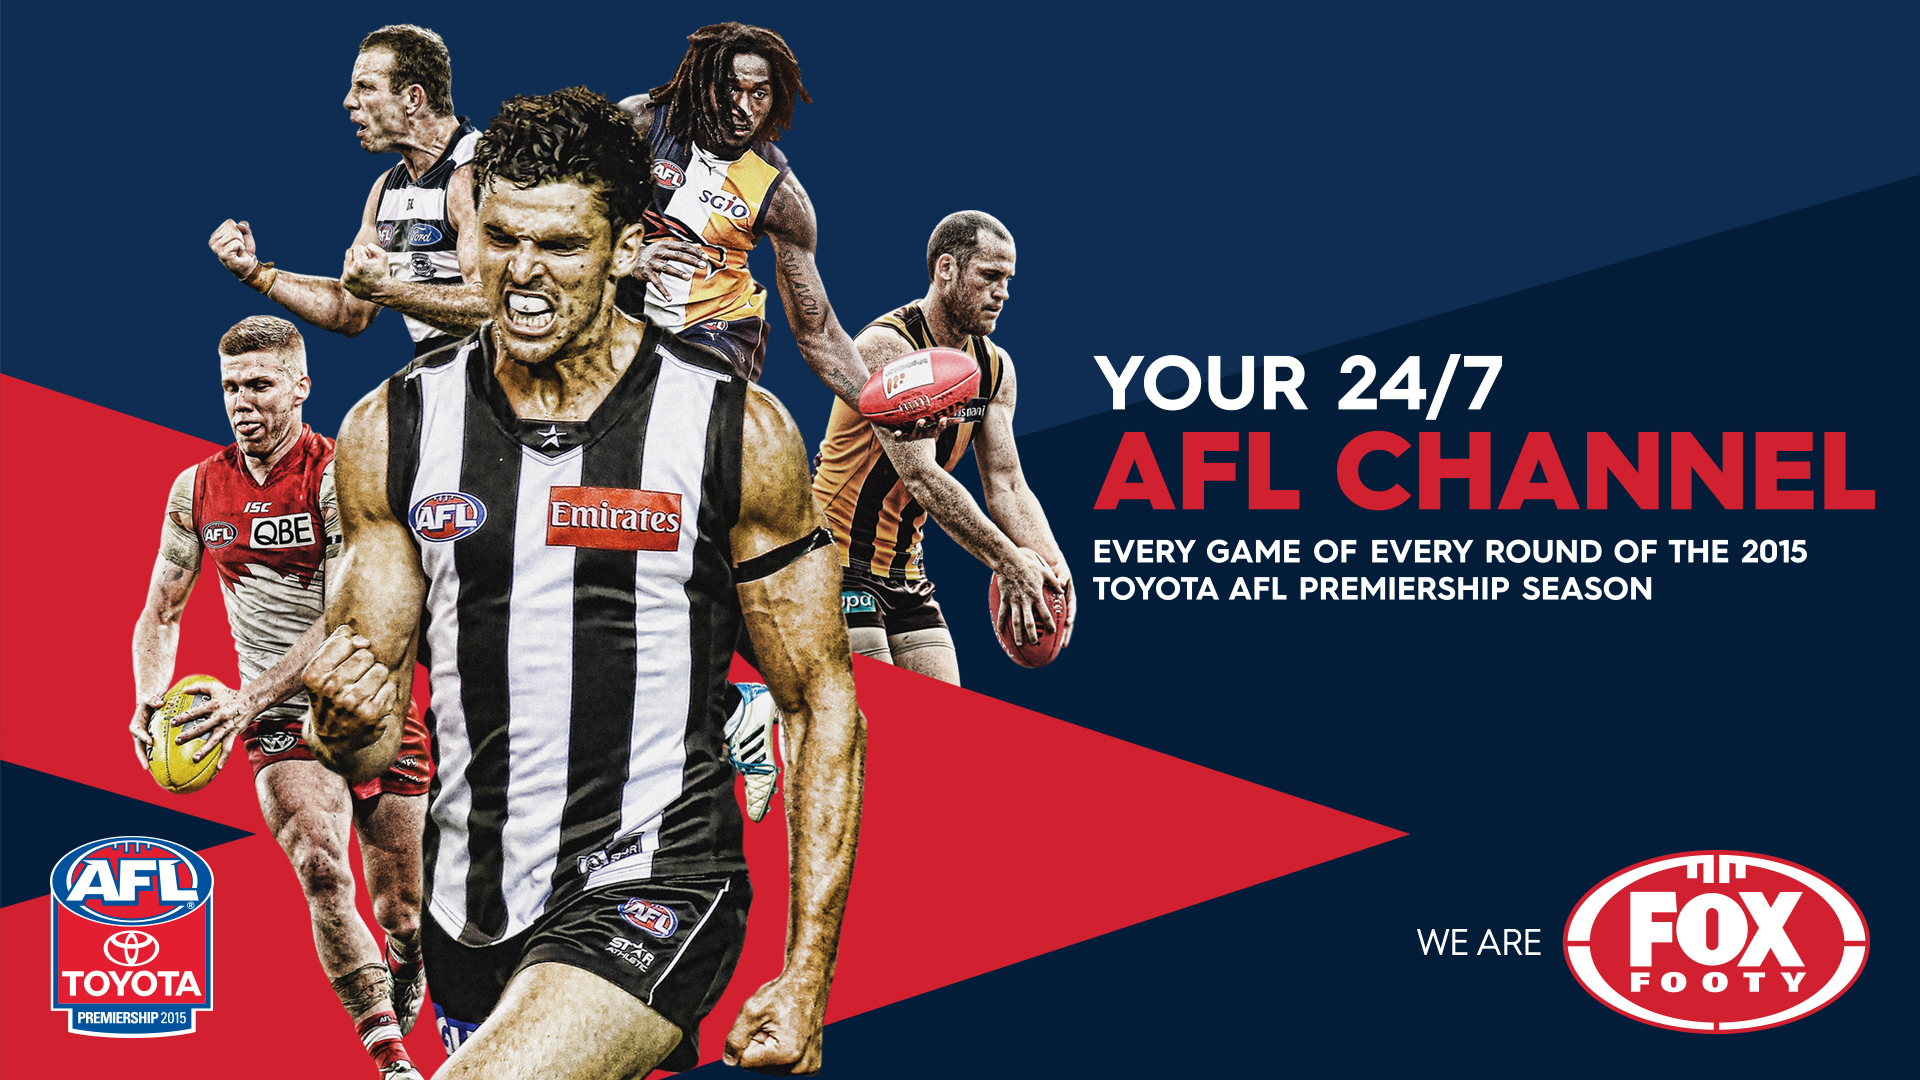 AFL-on-FF_Launch_16x9-Horizontal.jpg